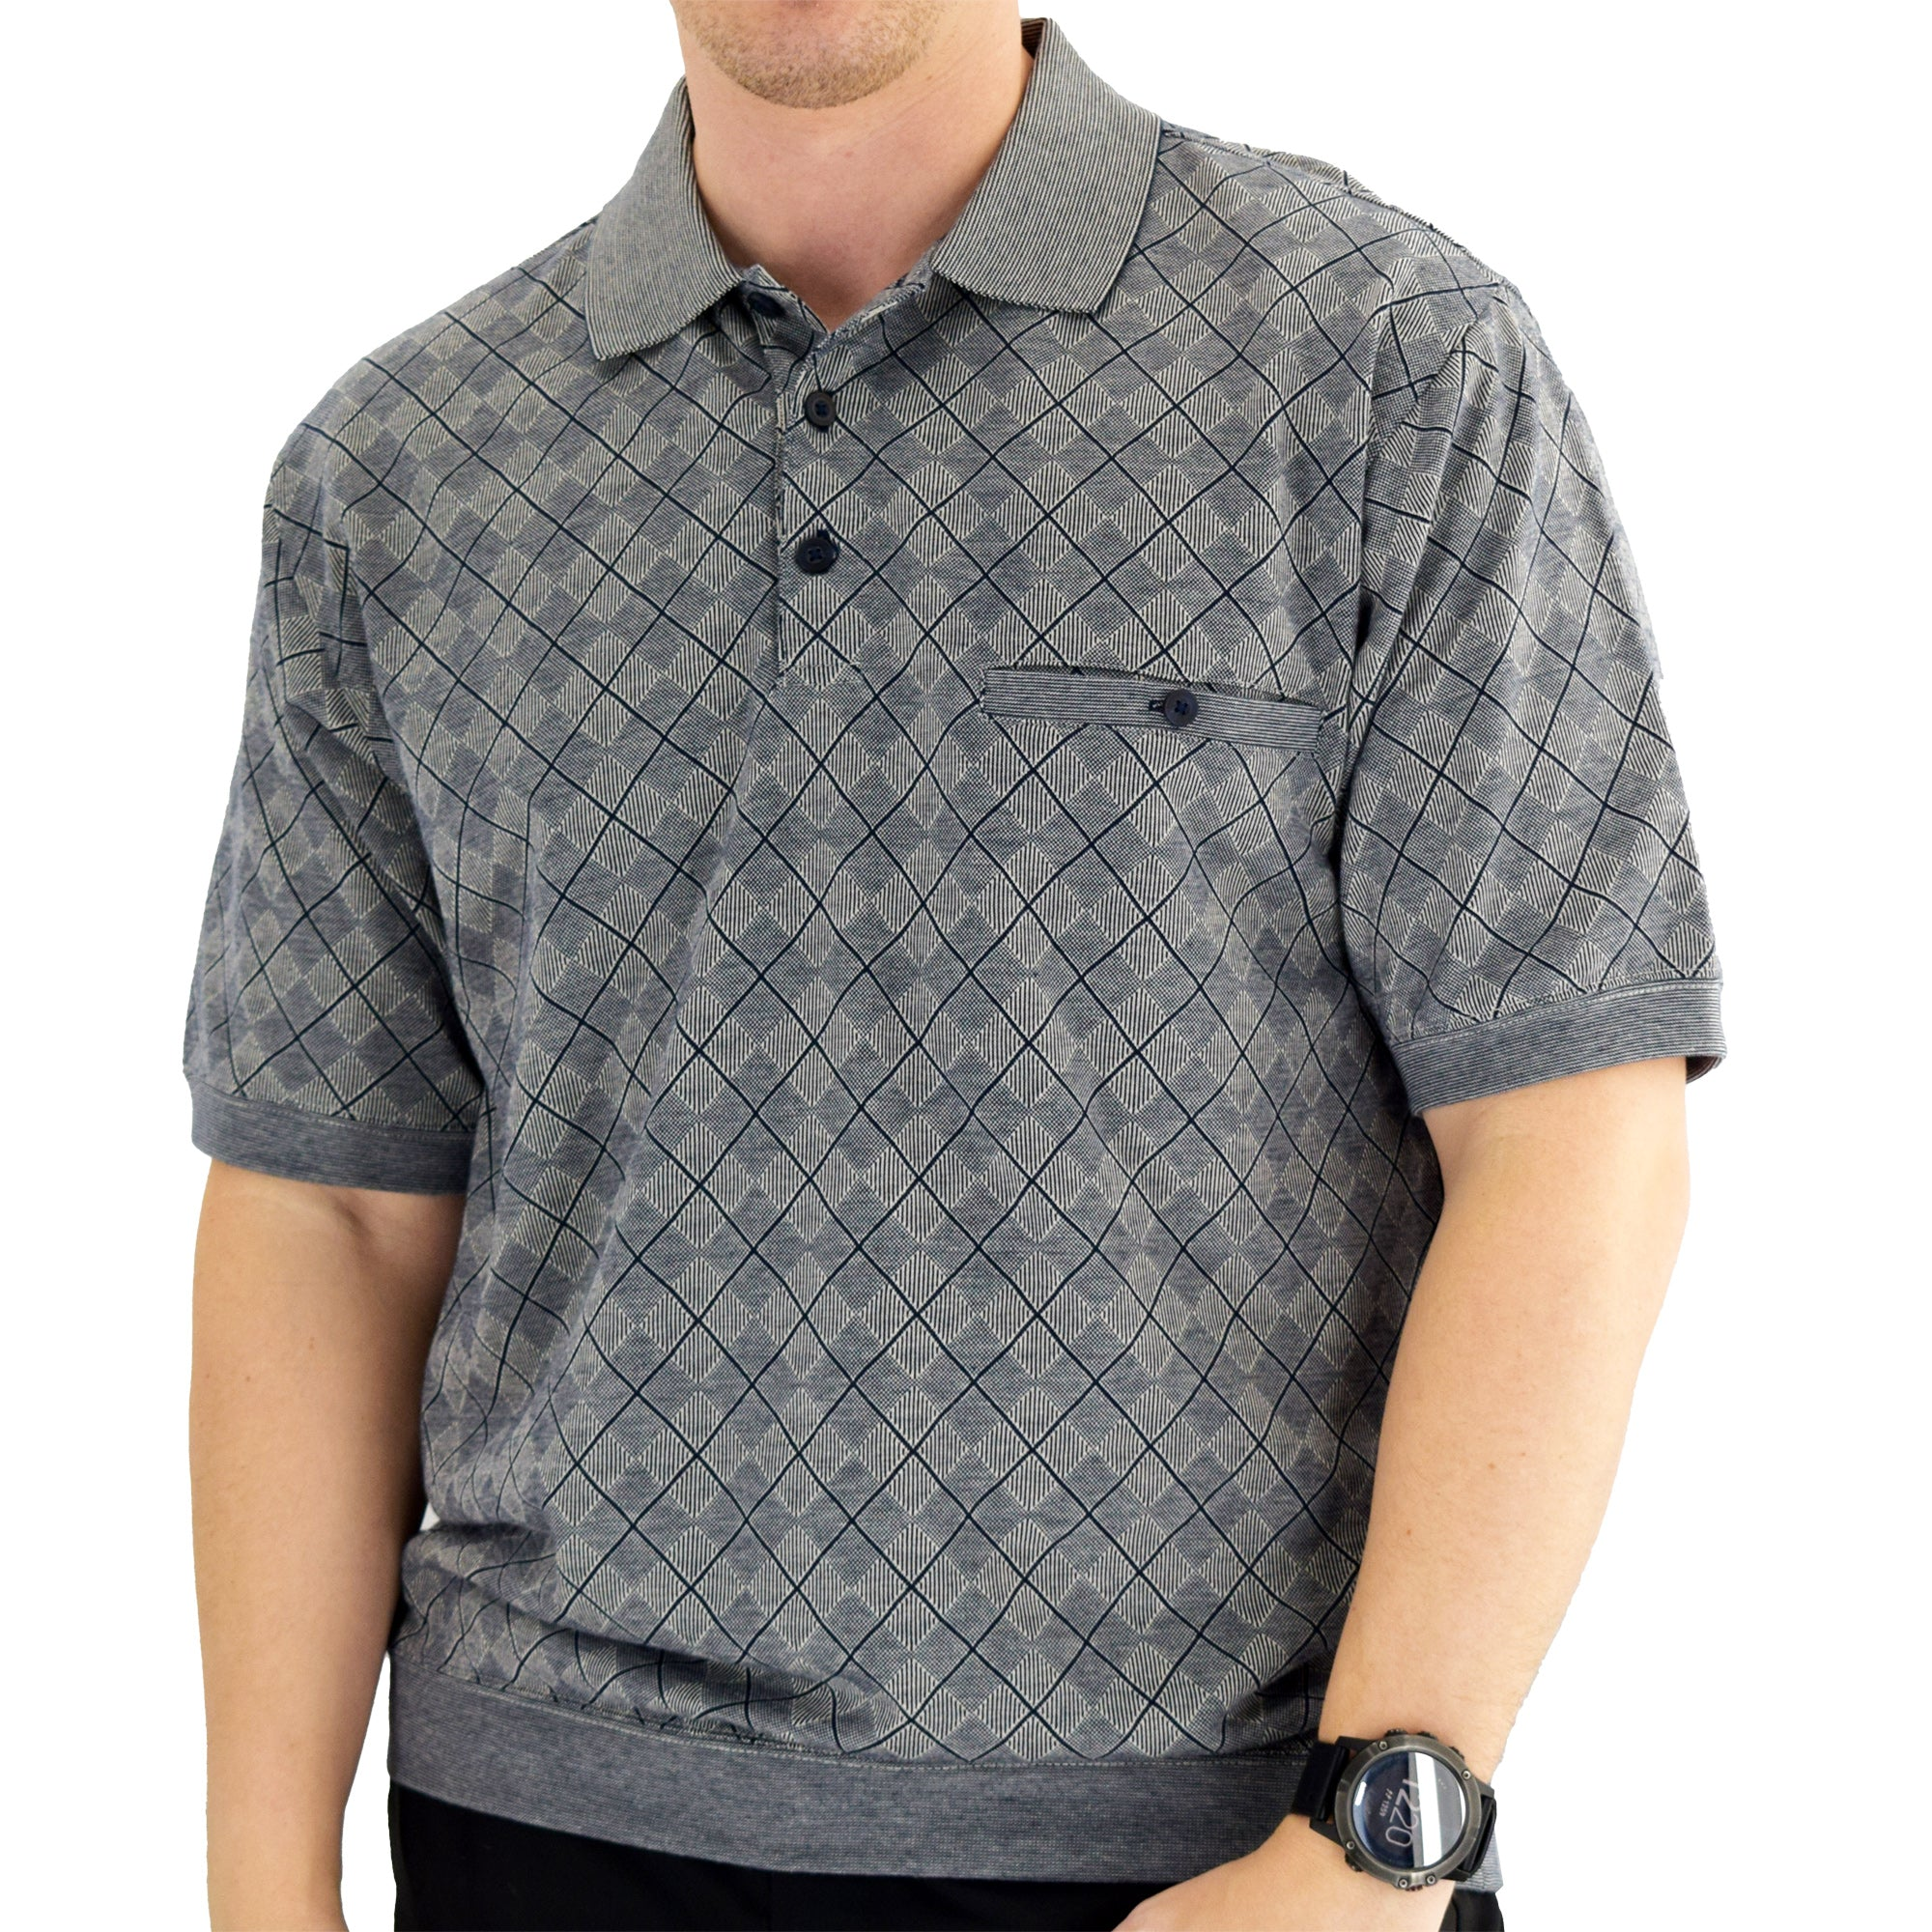 Classics by Palmland Short Sleeve Polo Shirt Navy - 6191-416 - theflagshirt